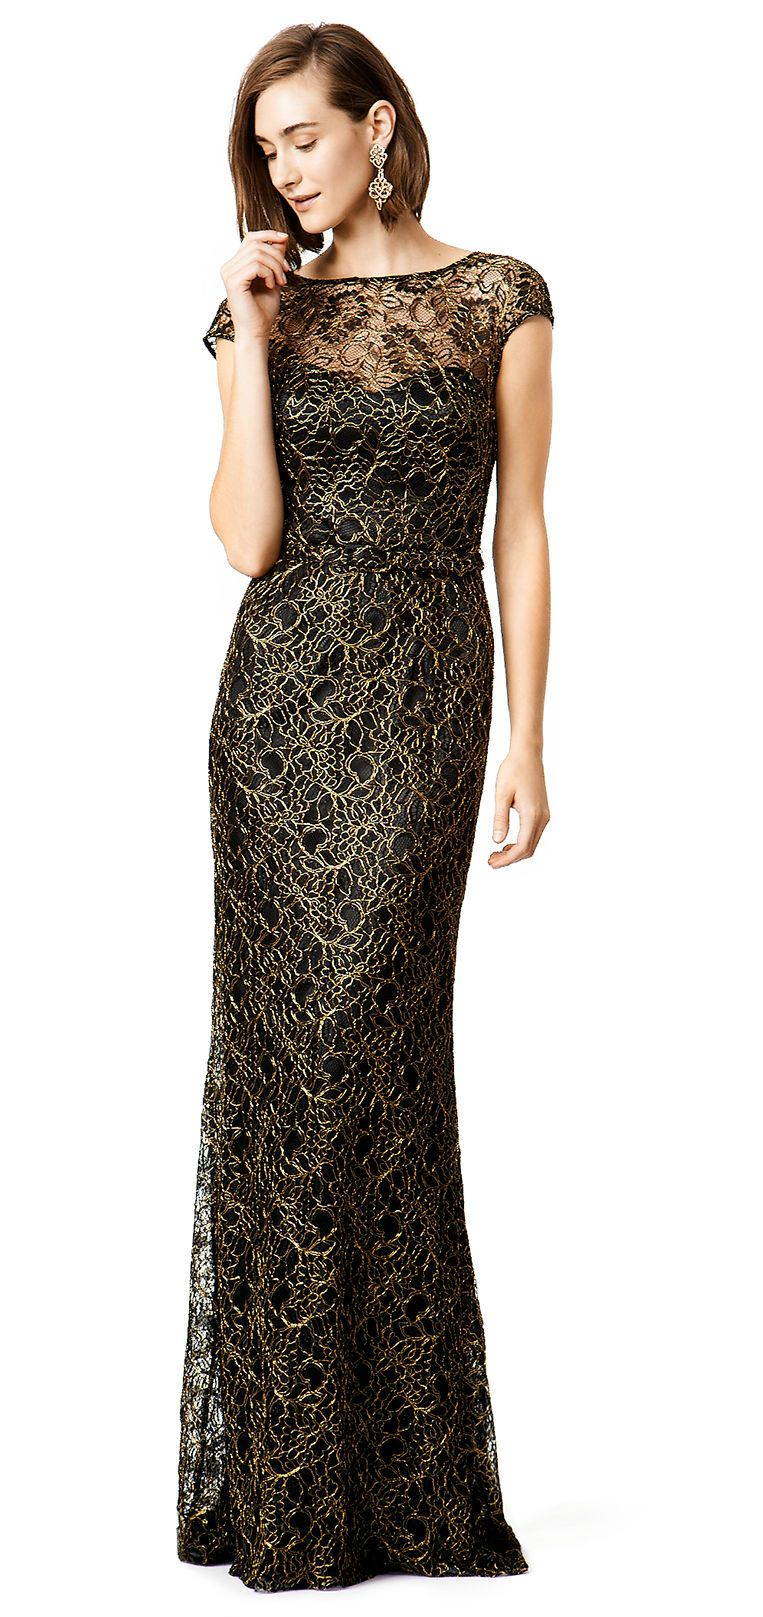 Absolutely stunning black and gold lace evening gown by Theia (at Rent the  Runway) for black tie events. 4e35dcdf1b88